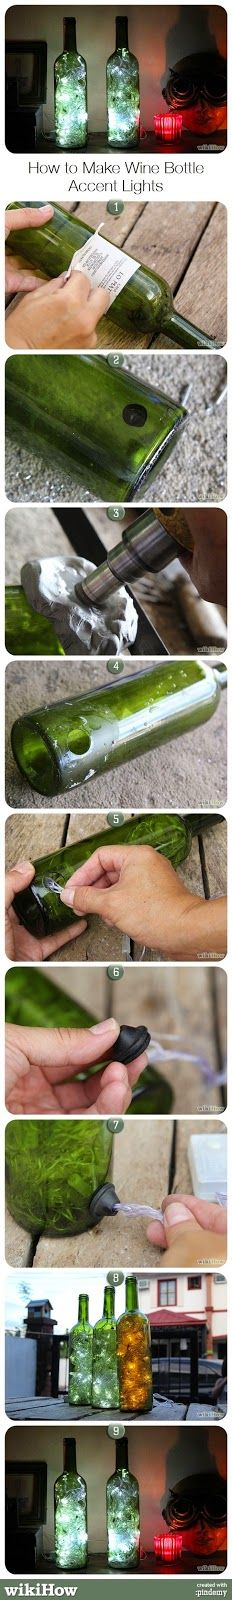 How to Make Wine Bottle Accent Lights